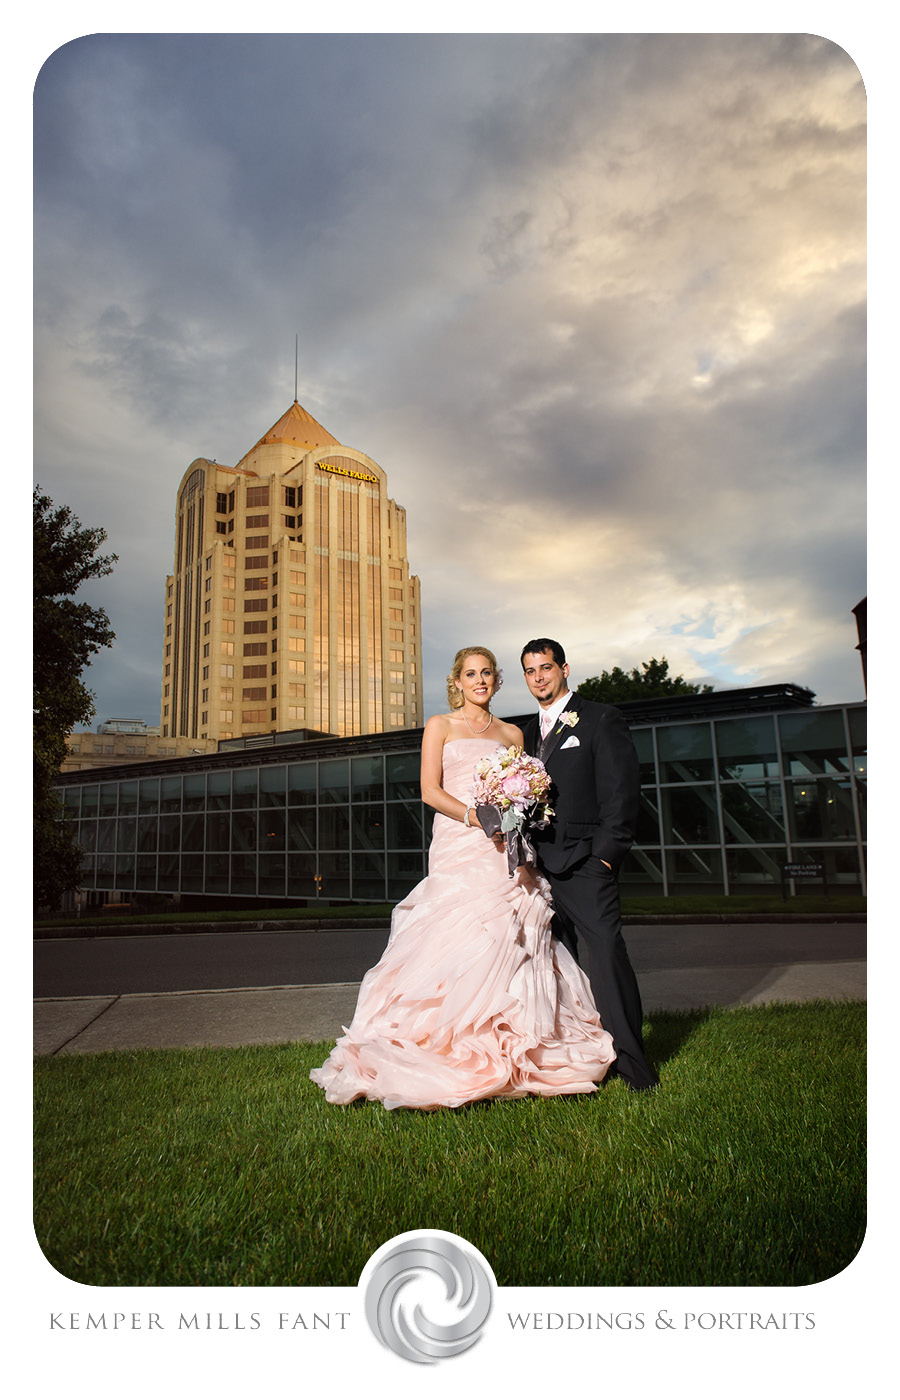 Hotel Roanoke Wedding Photographer Kemper Mills Fant